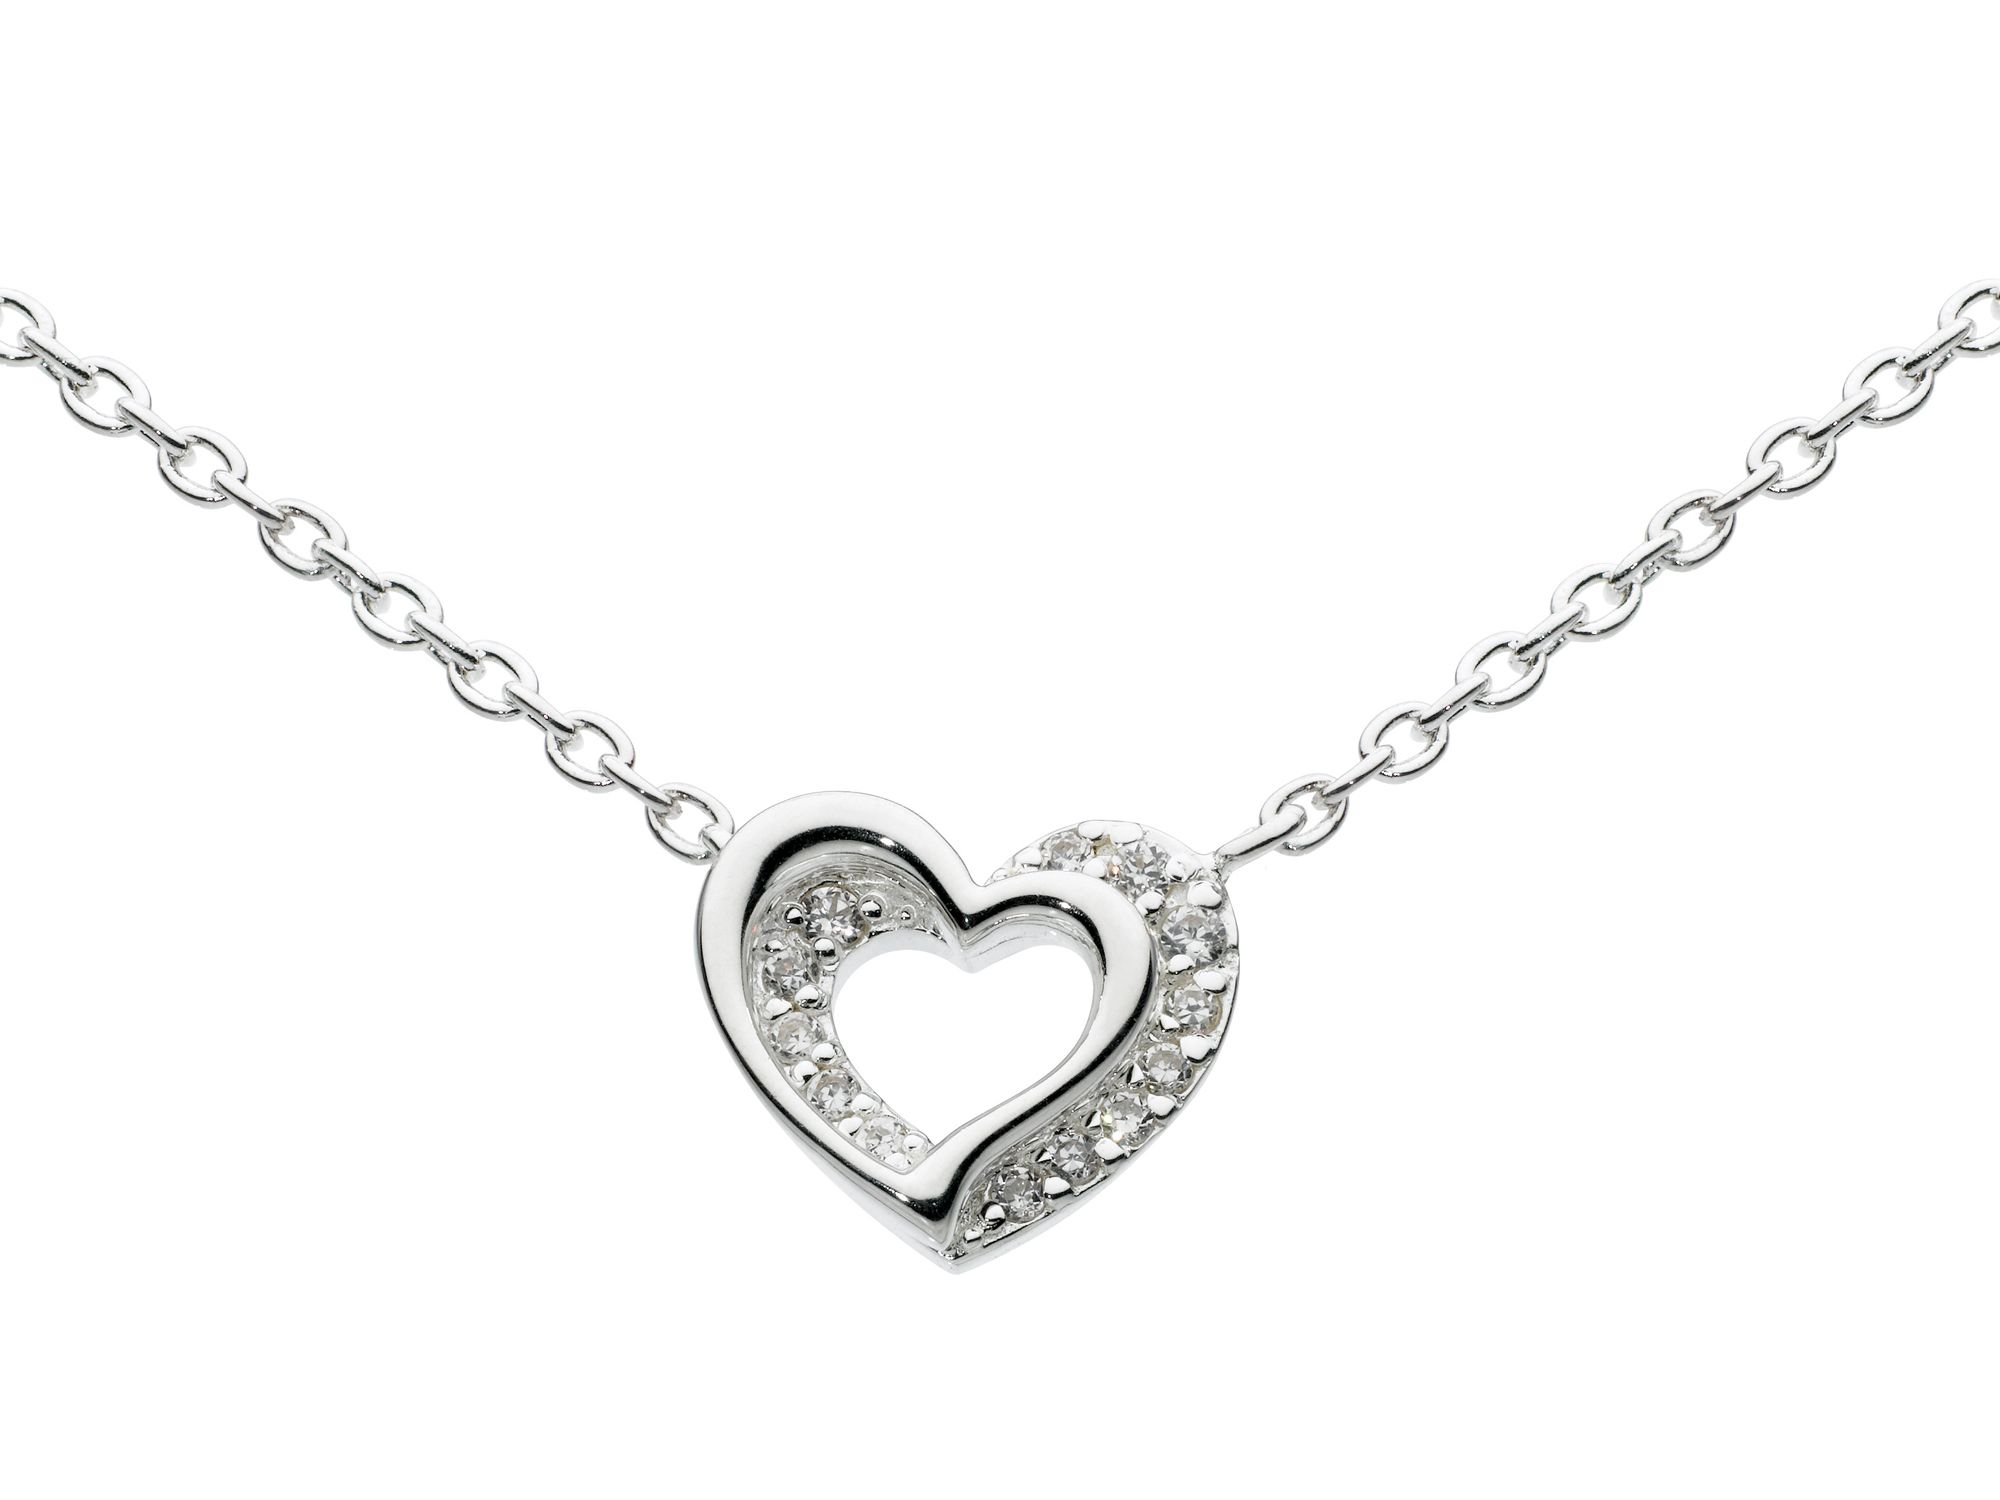 Sterling silver and pave heart necklace